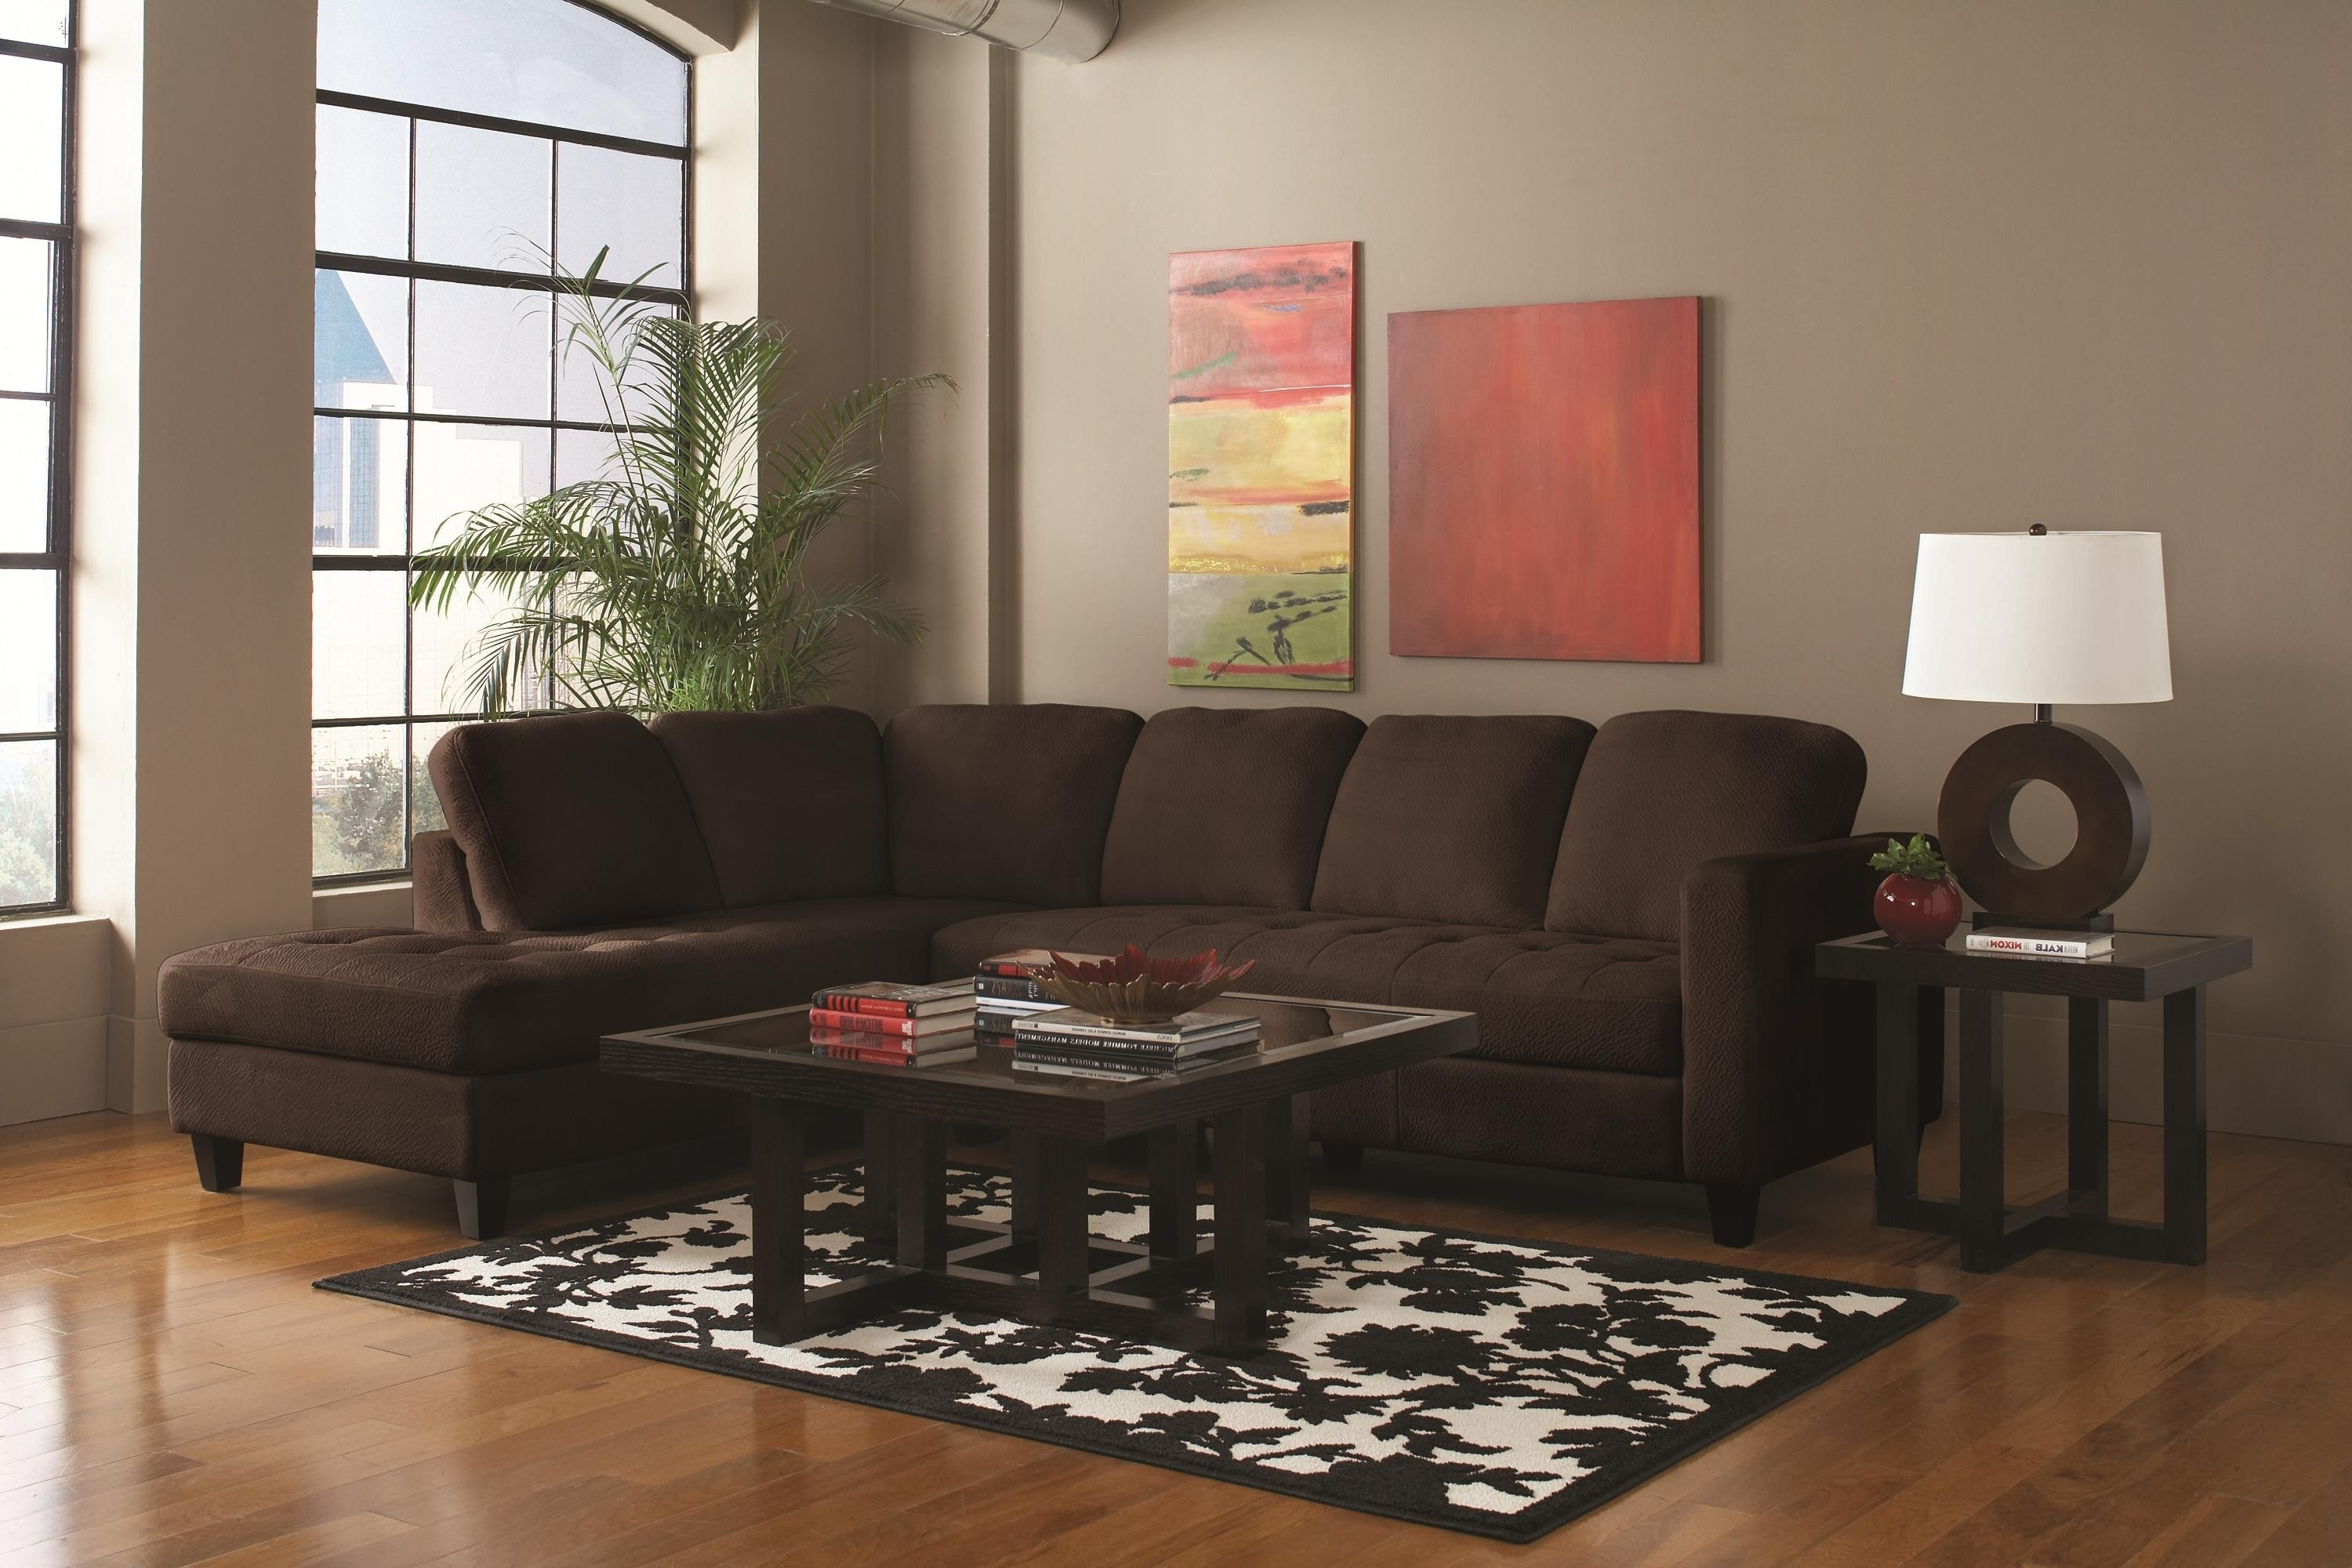 Latest Coffee Tables For Sectional Sofa With Chaise Within Best Coffee Table For Sectional Couch – Laphotos (View 2 of 15)